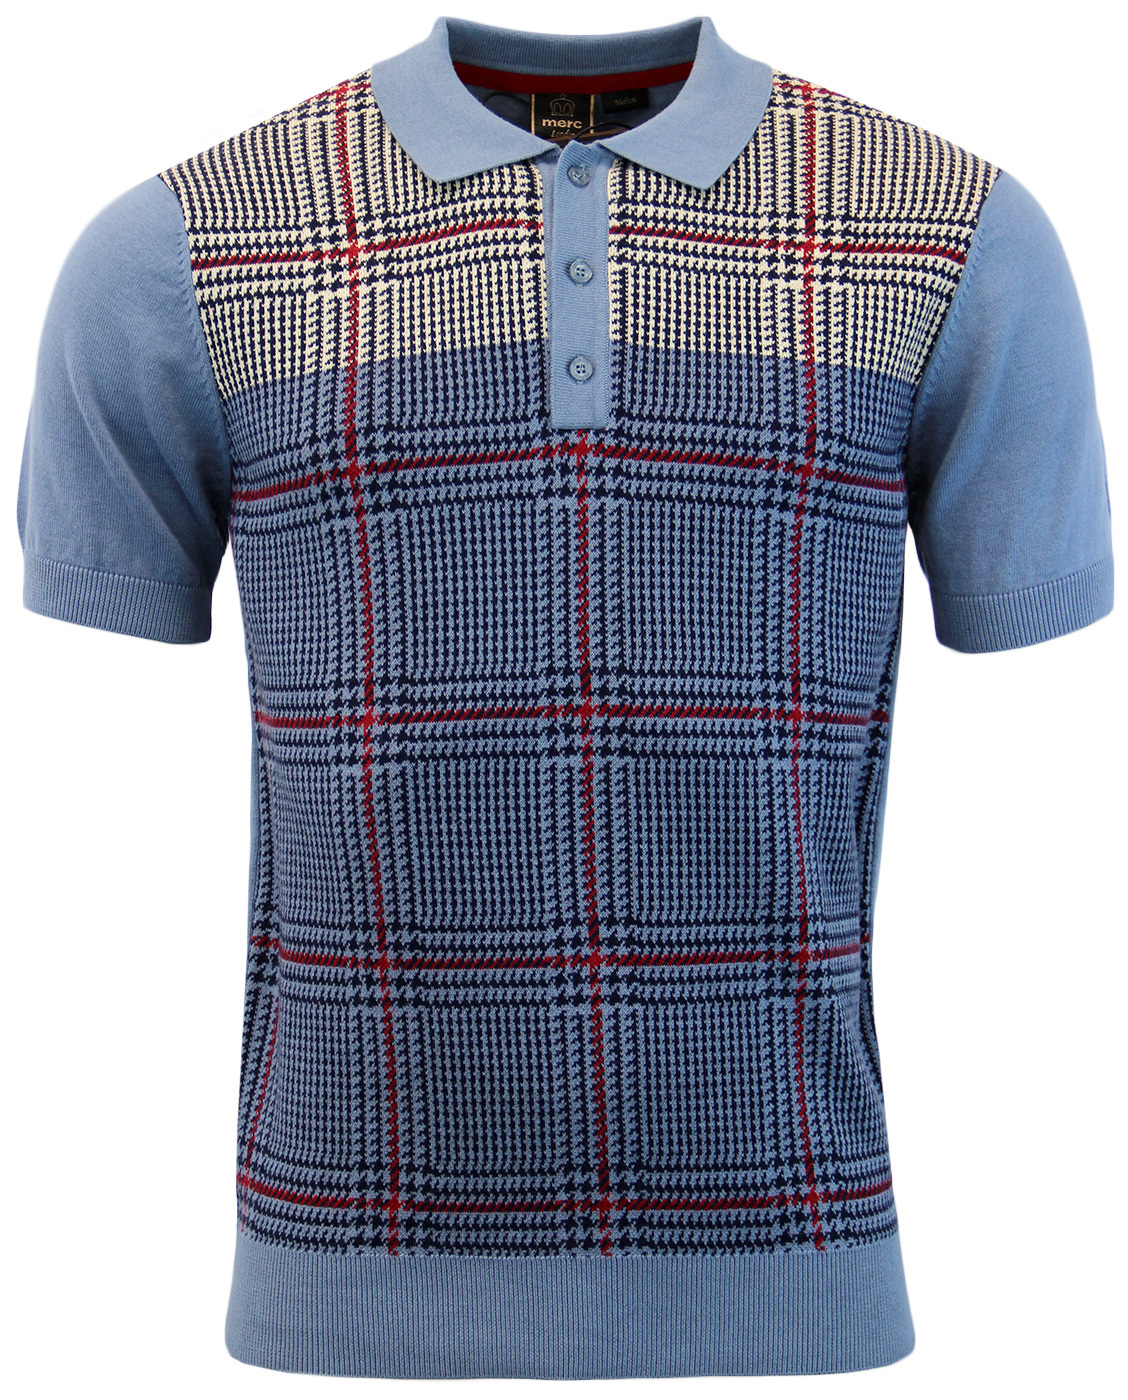 Tetley MERC Mod Prince Of Wales Check Knitted Polo